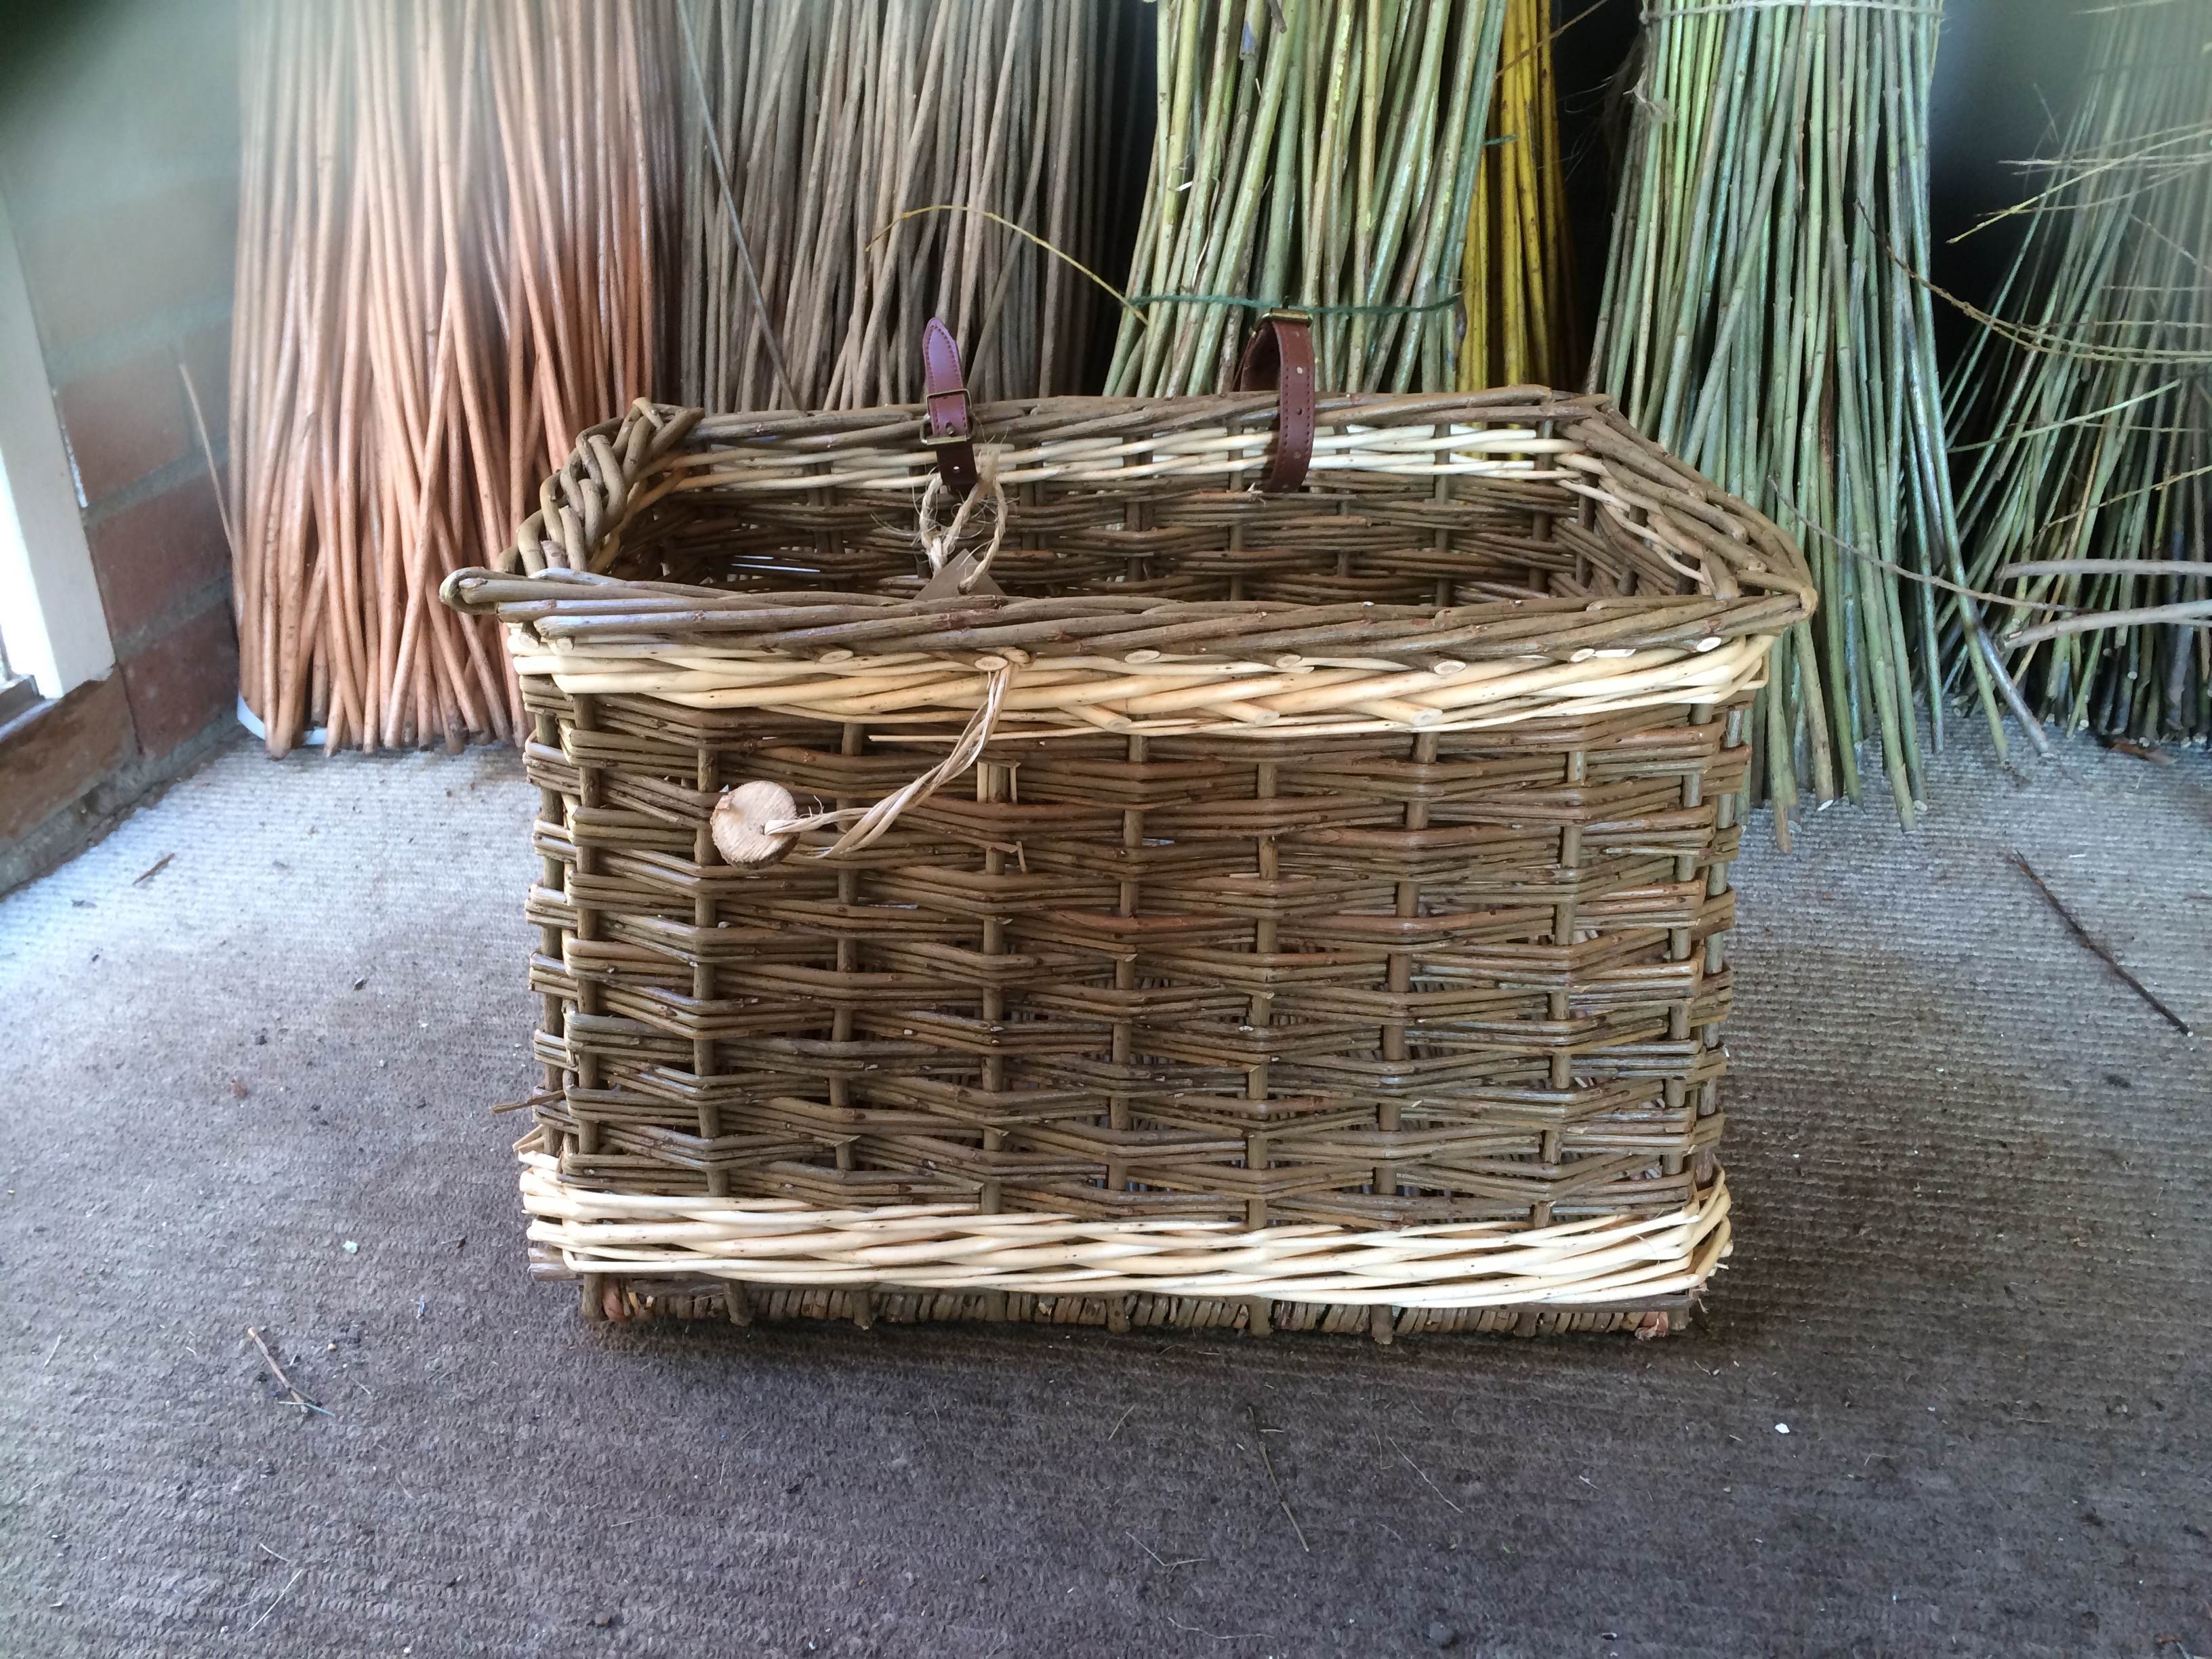 Bicycle Basket (Square)